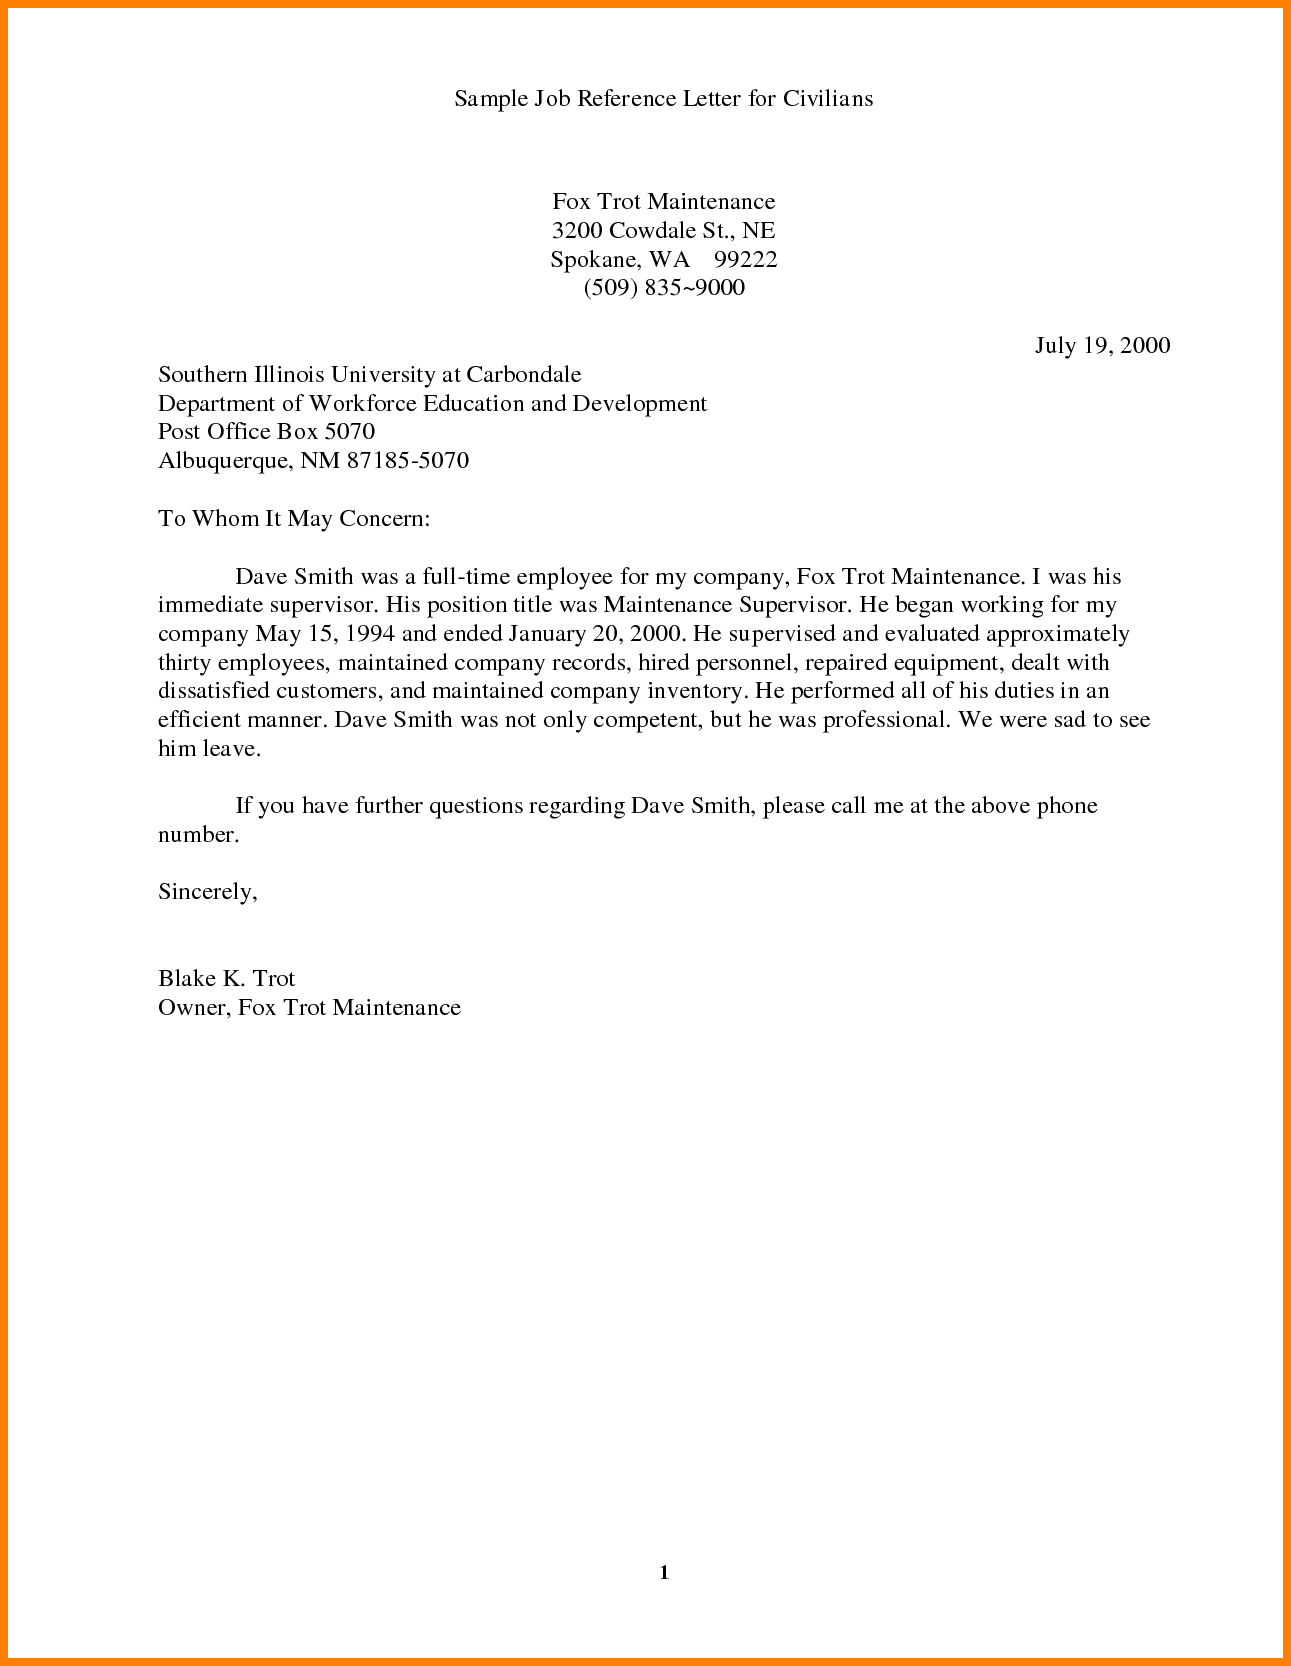 Reference Letter Template for A Friend - Referral Letters Samples Waltergarwaltravels